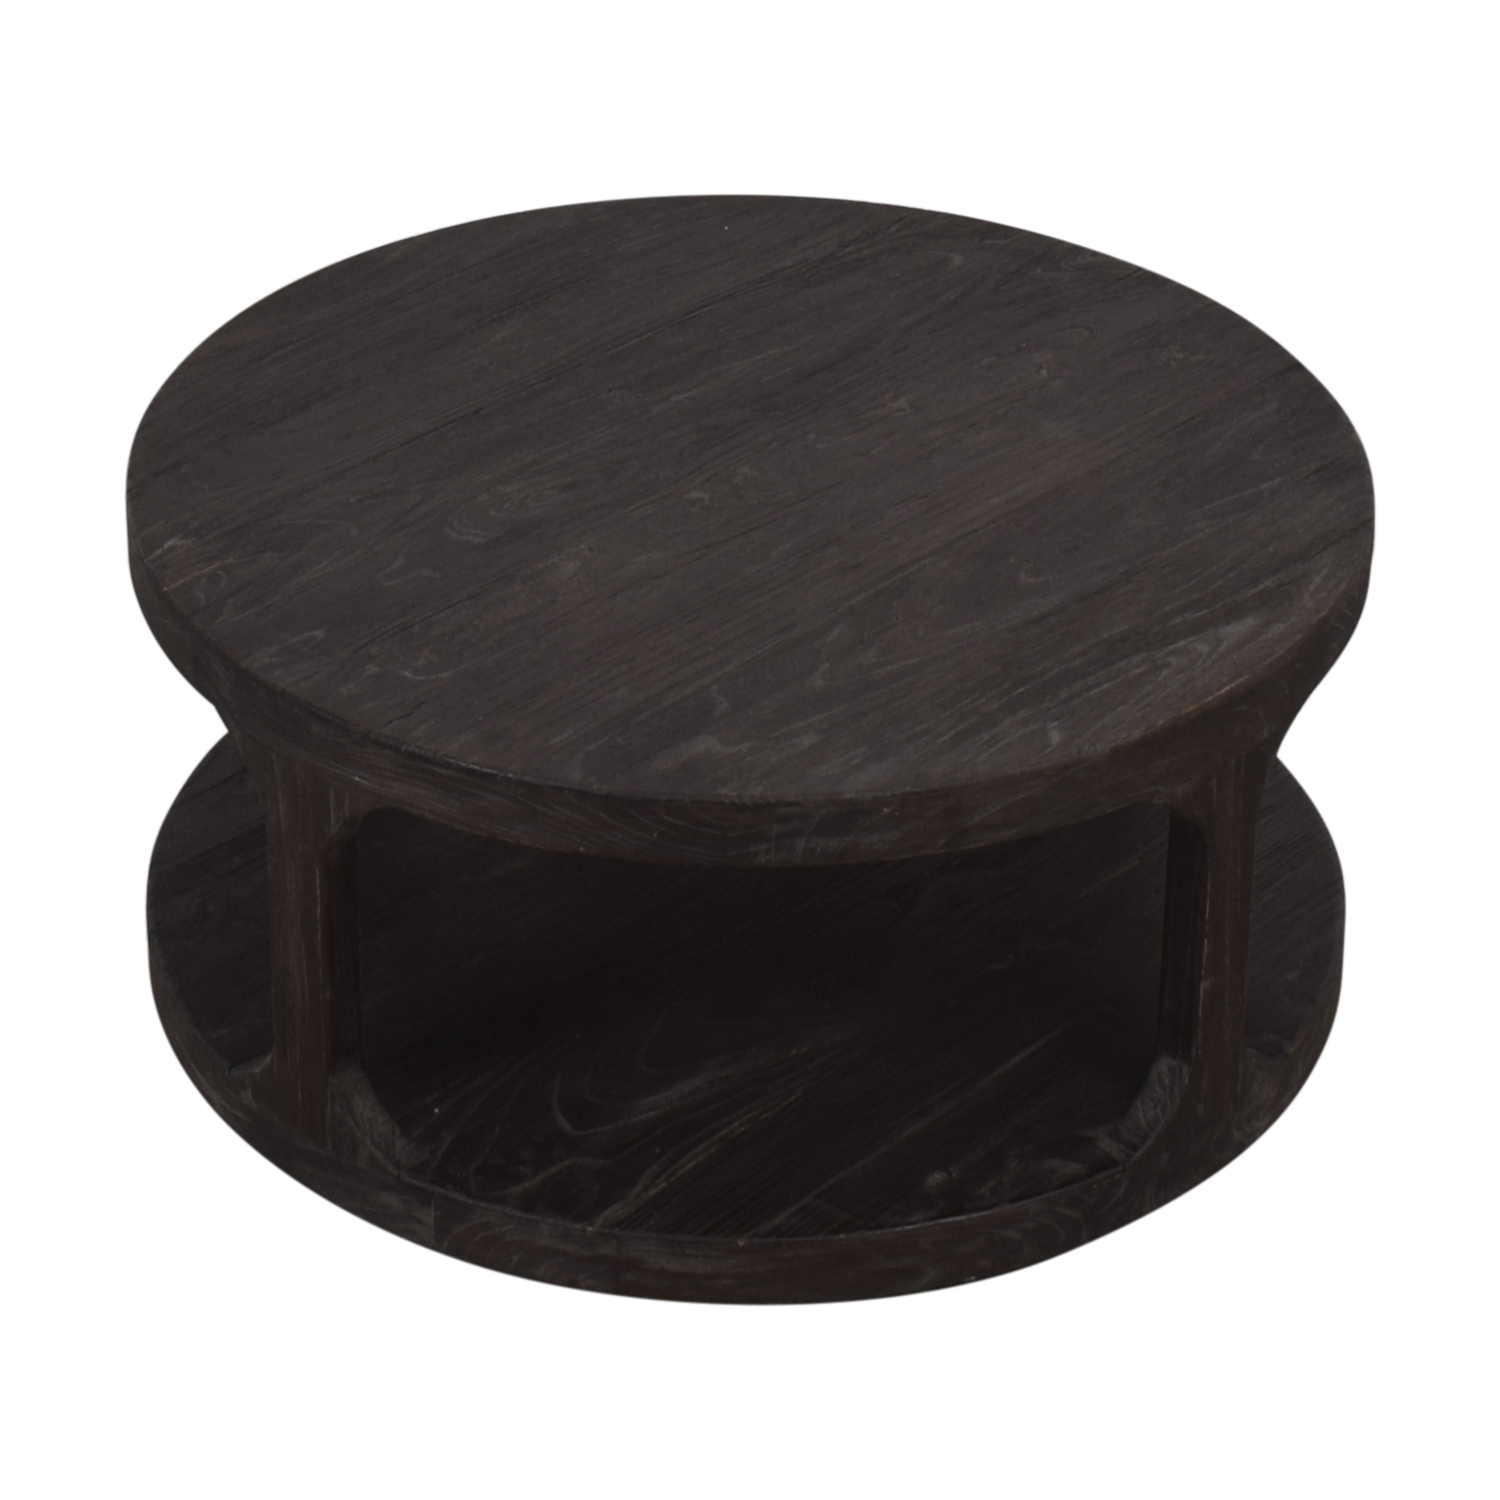 Restoration Hardware Restoration Hardware Martens Round Coffee Table nyc